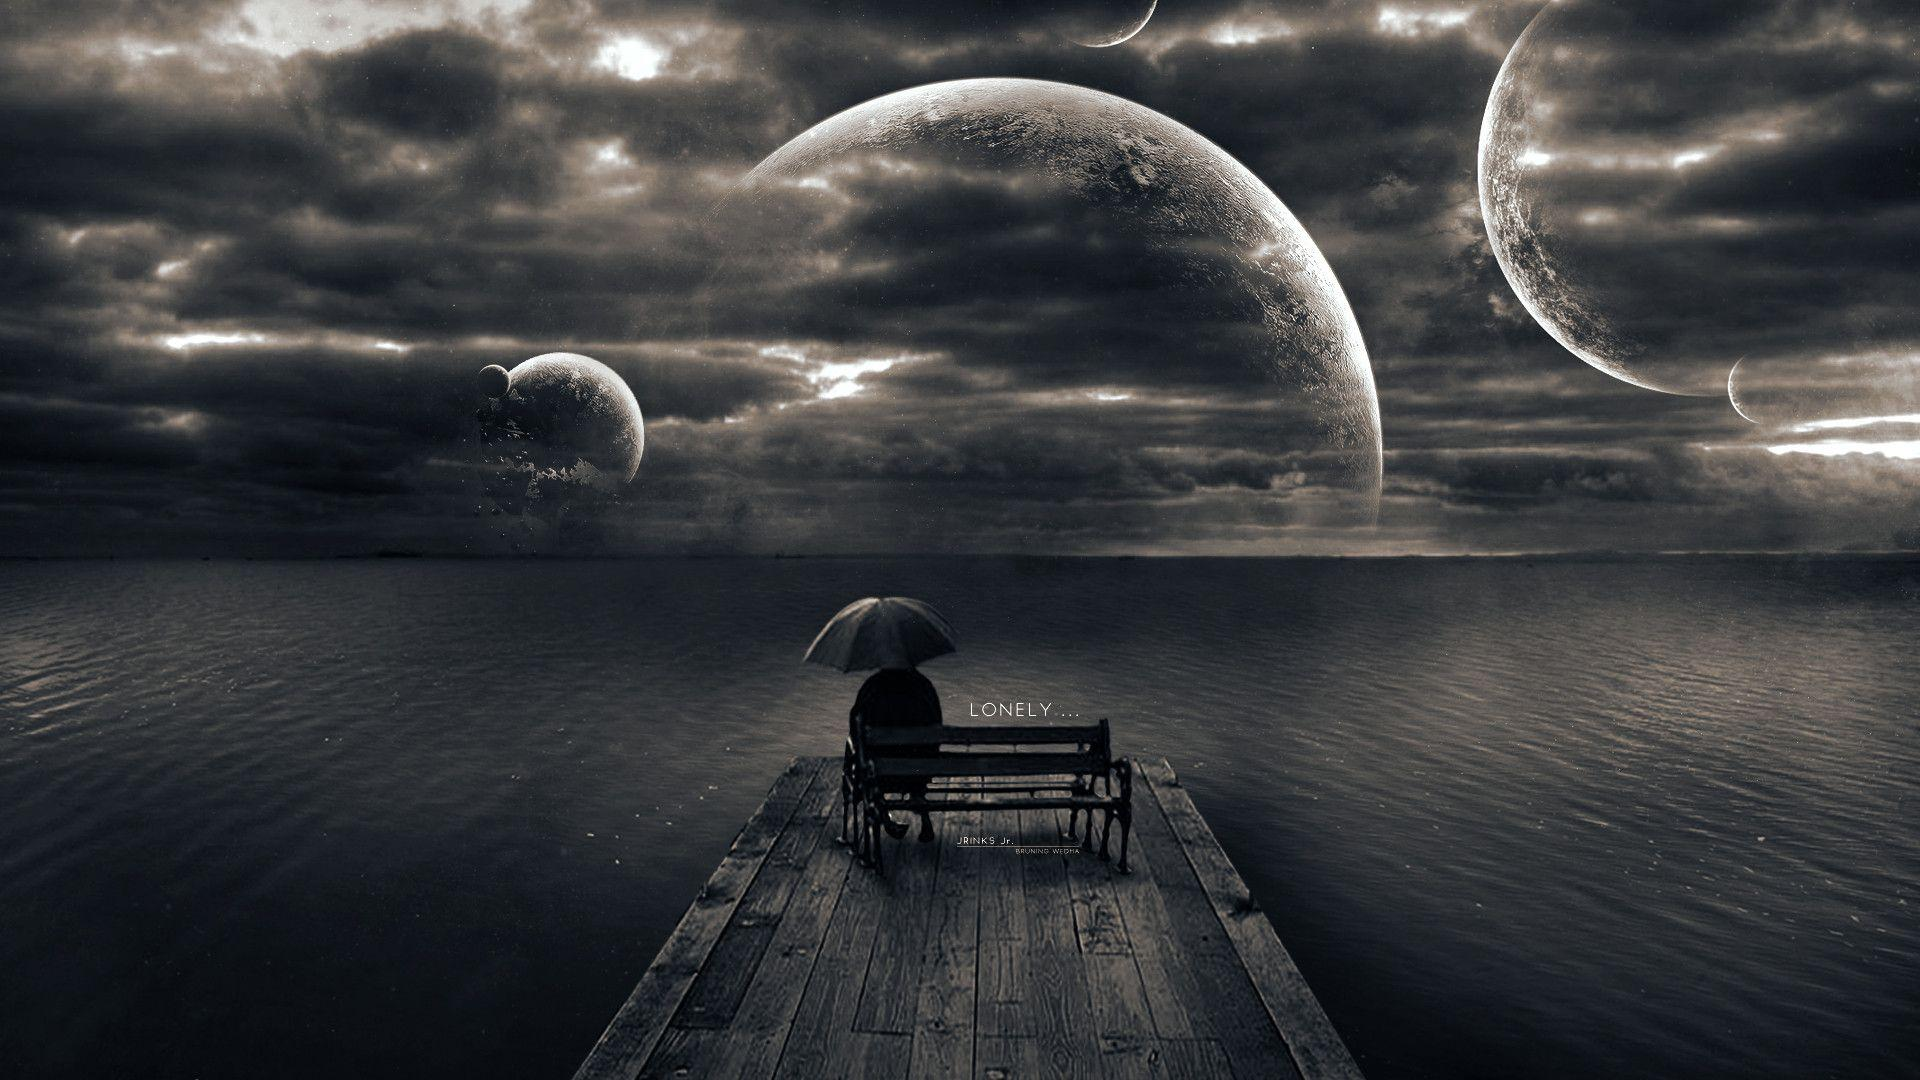 Loneliness Alone Wallpapers - Wallpaper Cave